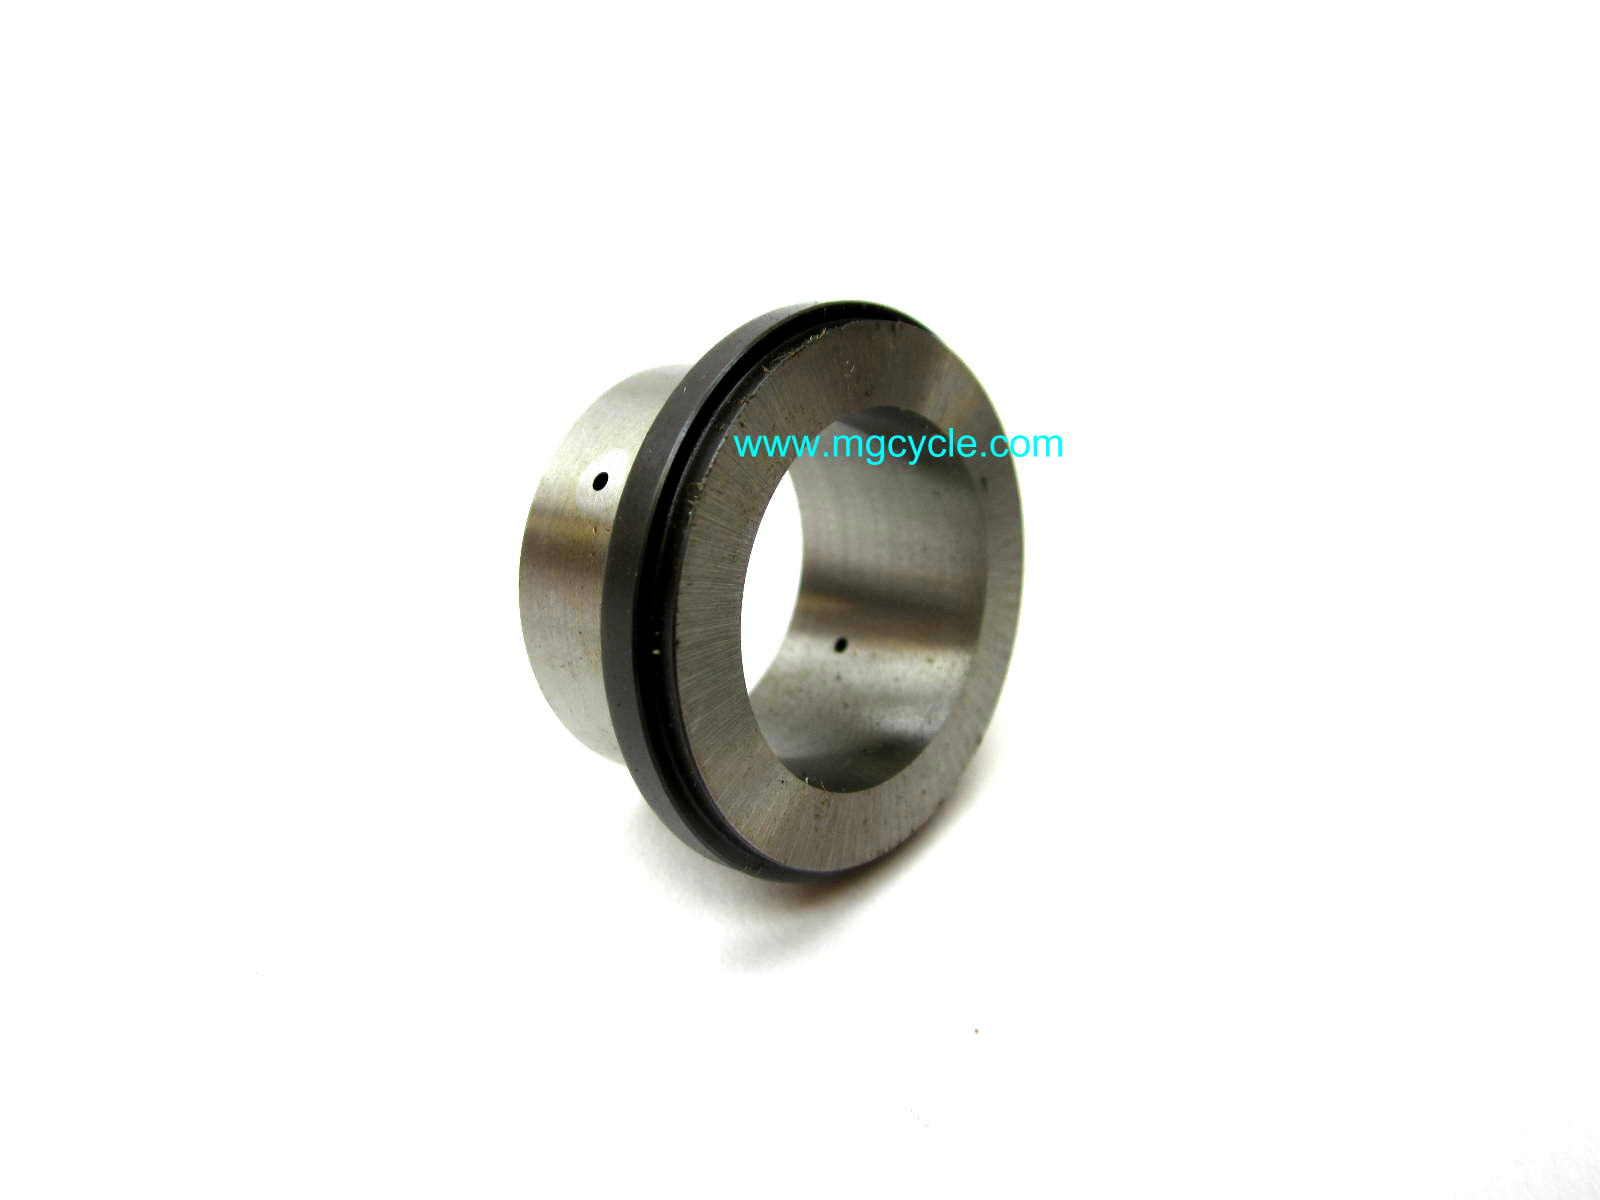 Inner bearing race bushing for main shaft needle bearings